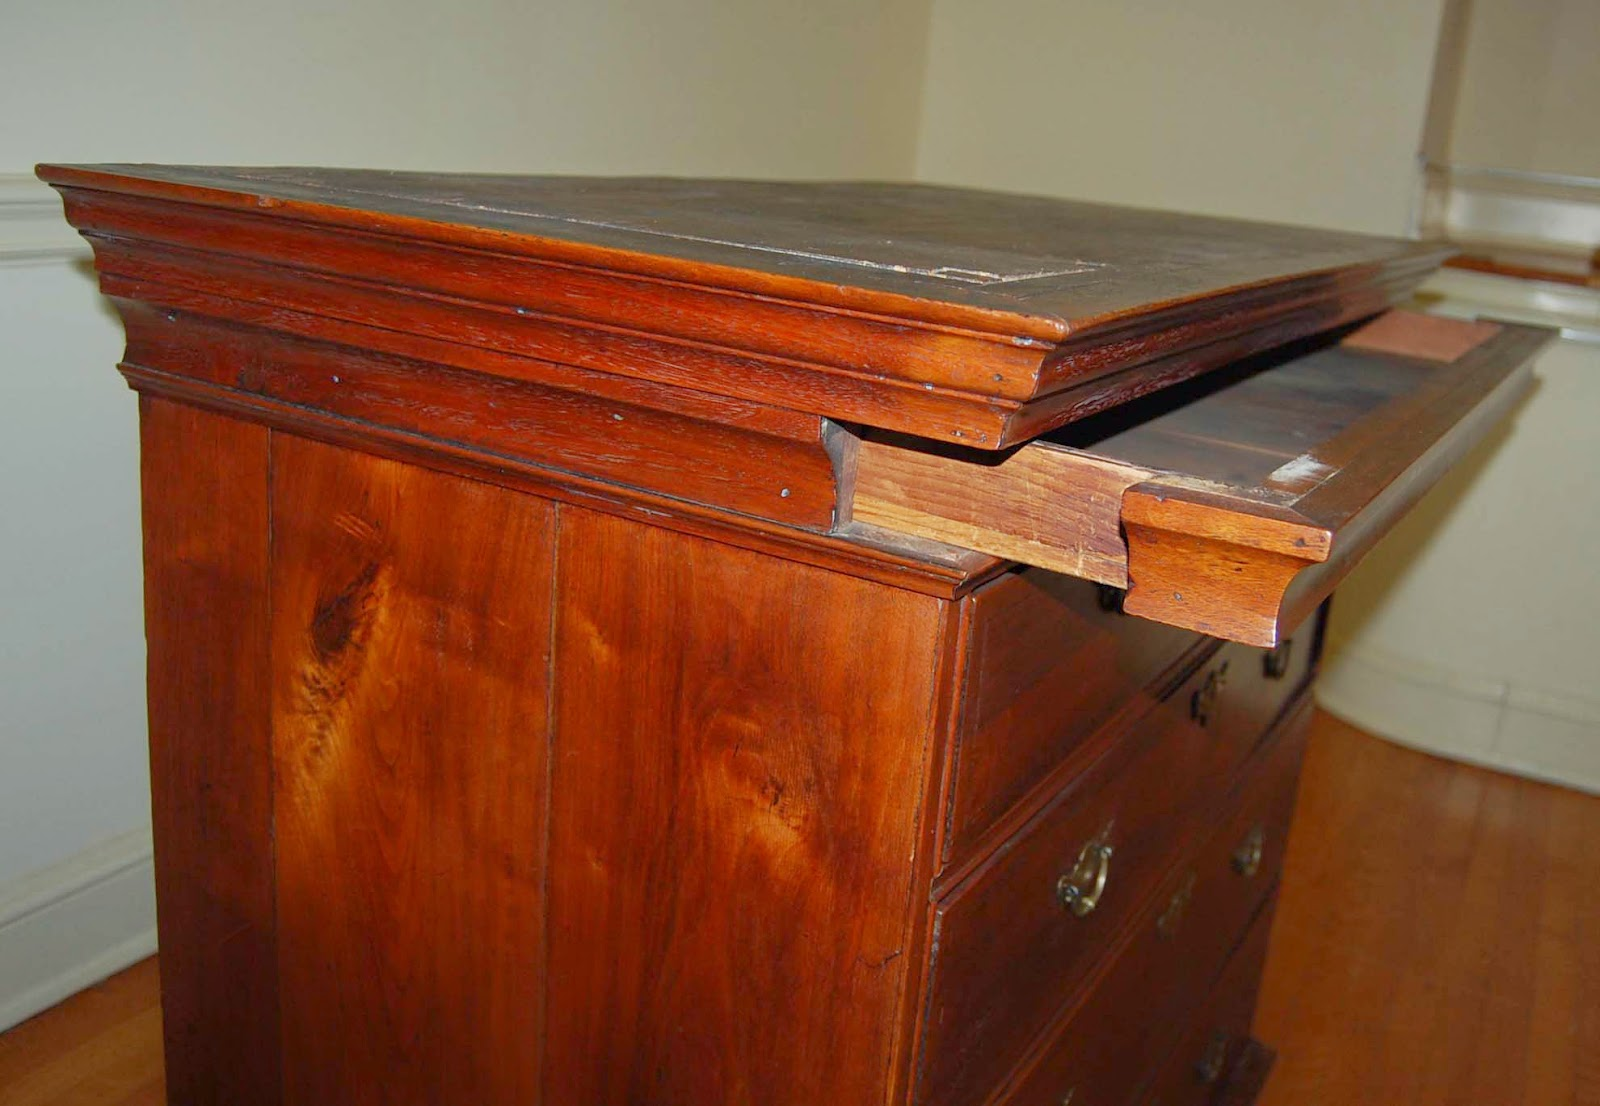 Morristown national historical park museum and library Secret drawer